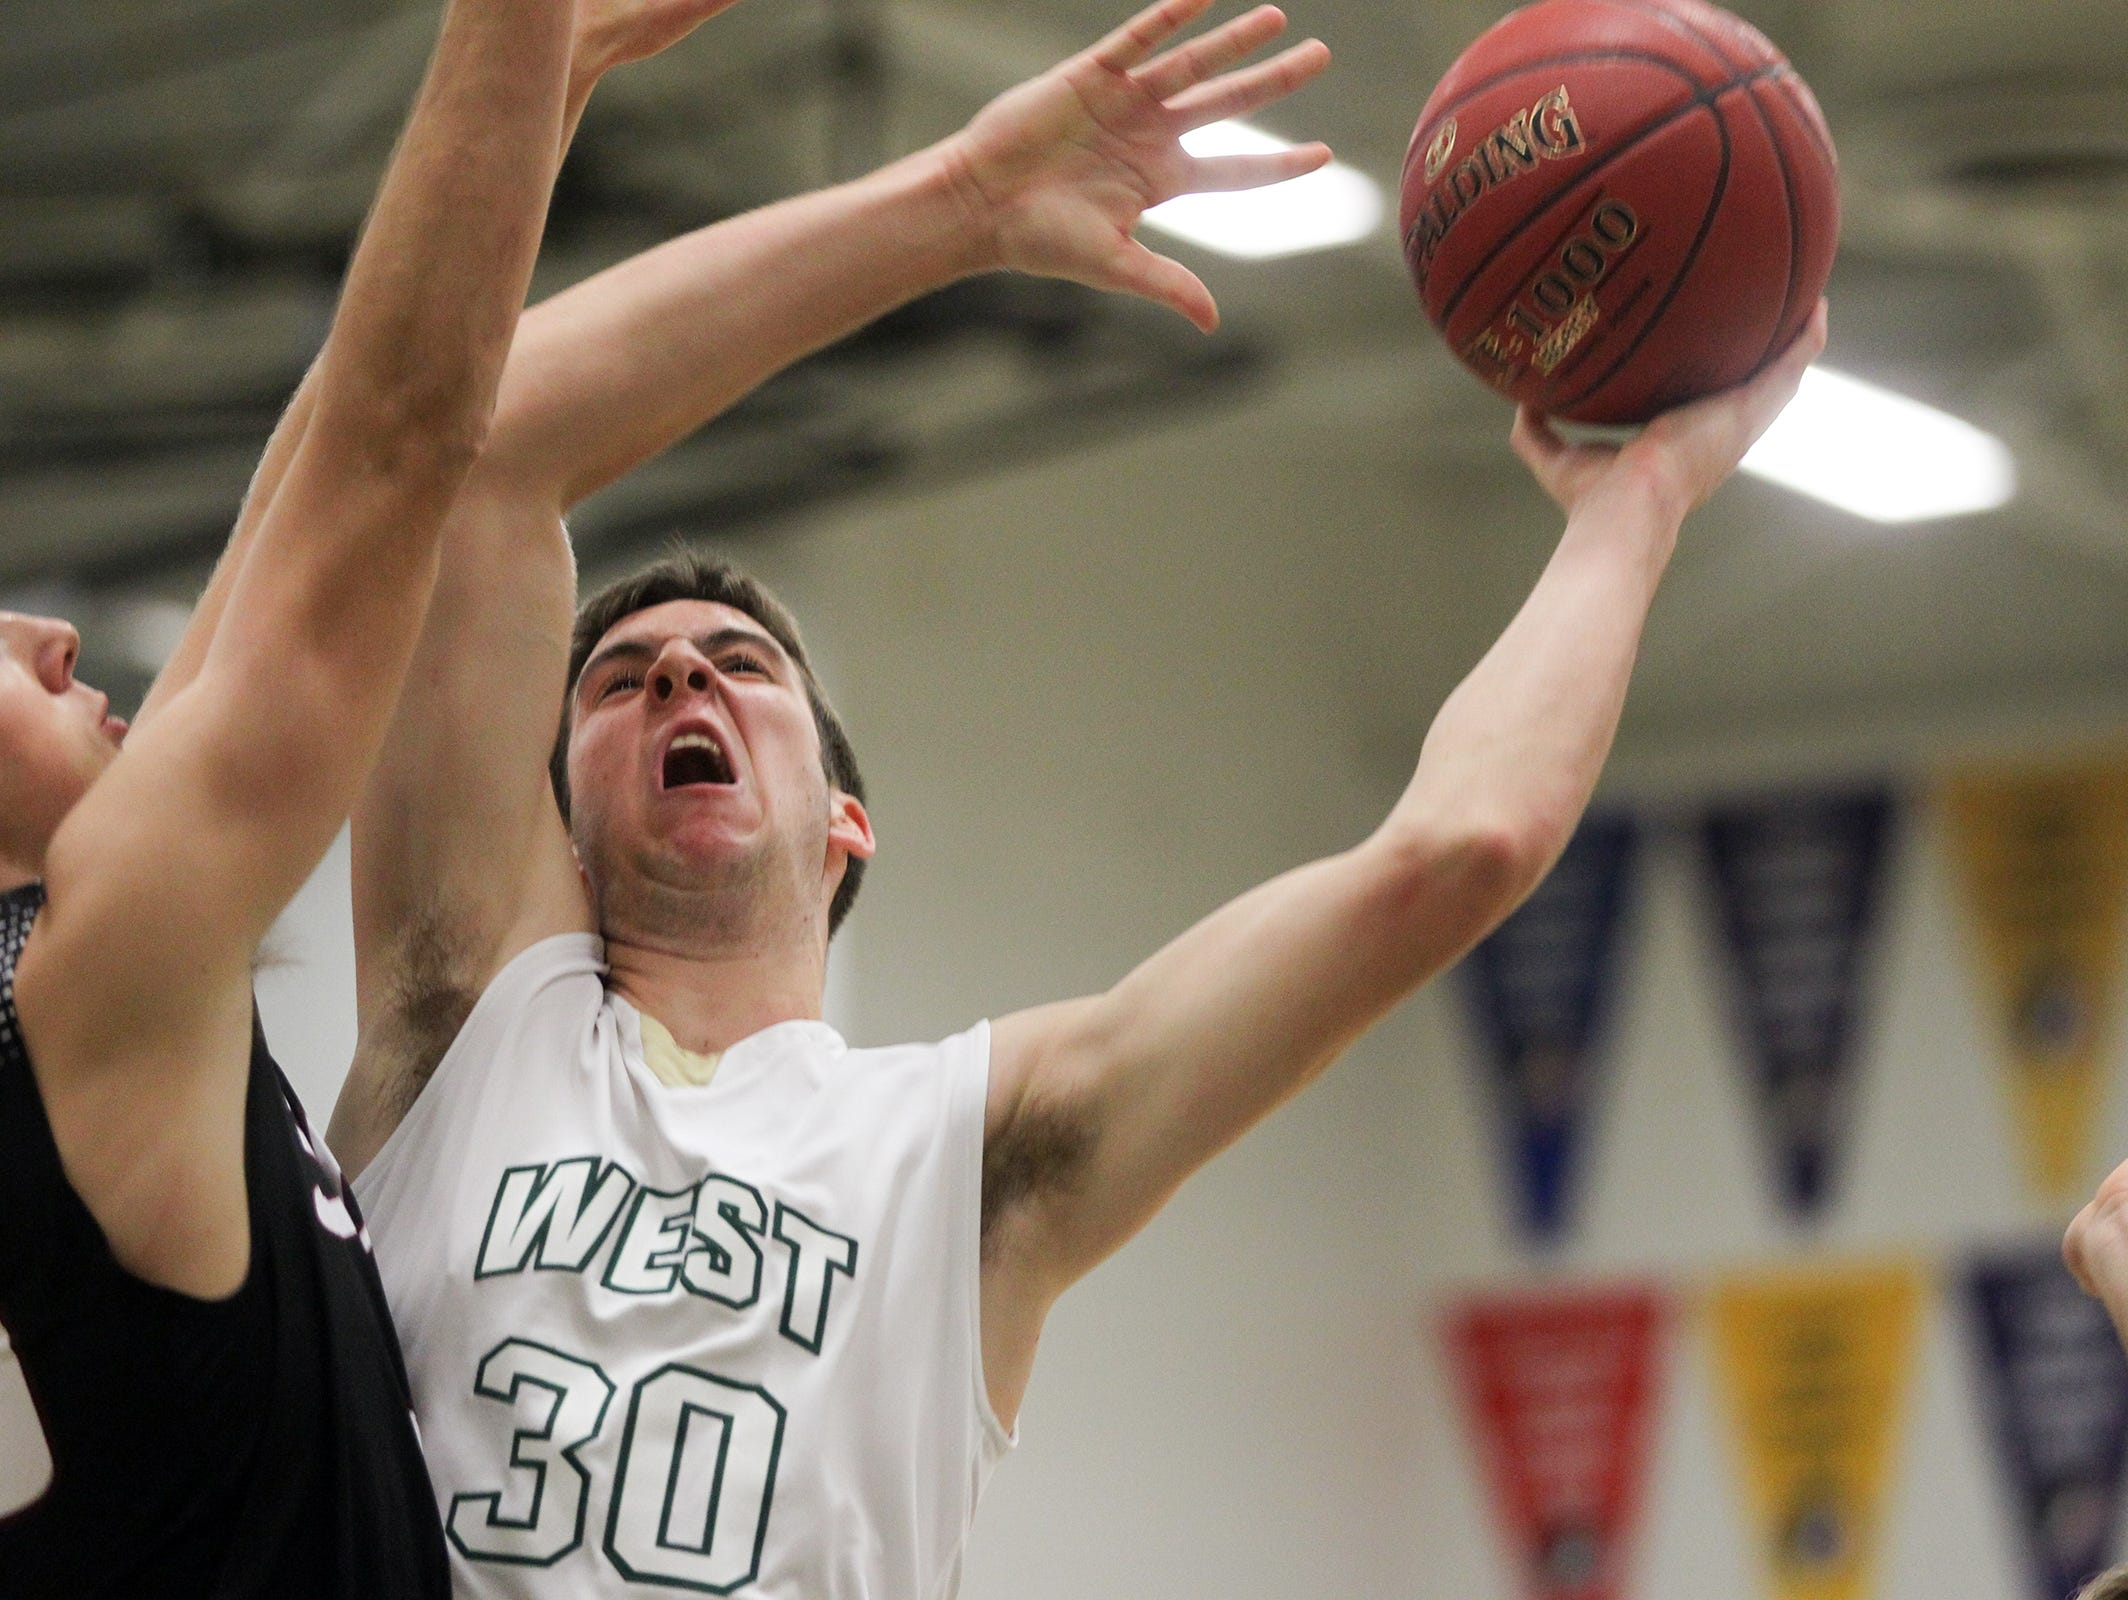 West High's Connor McCaffery goes up for a shot during the Trojans' game against Mount Vernon on Thursday, Dec. 3, 2015.